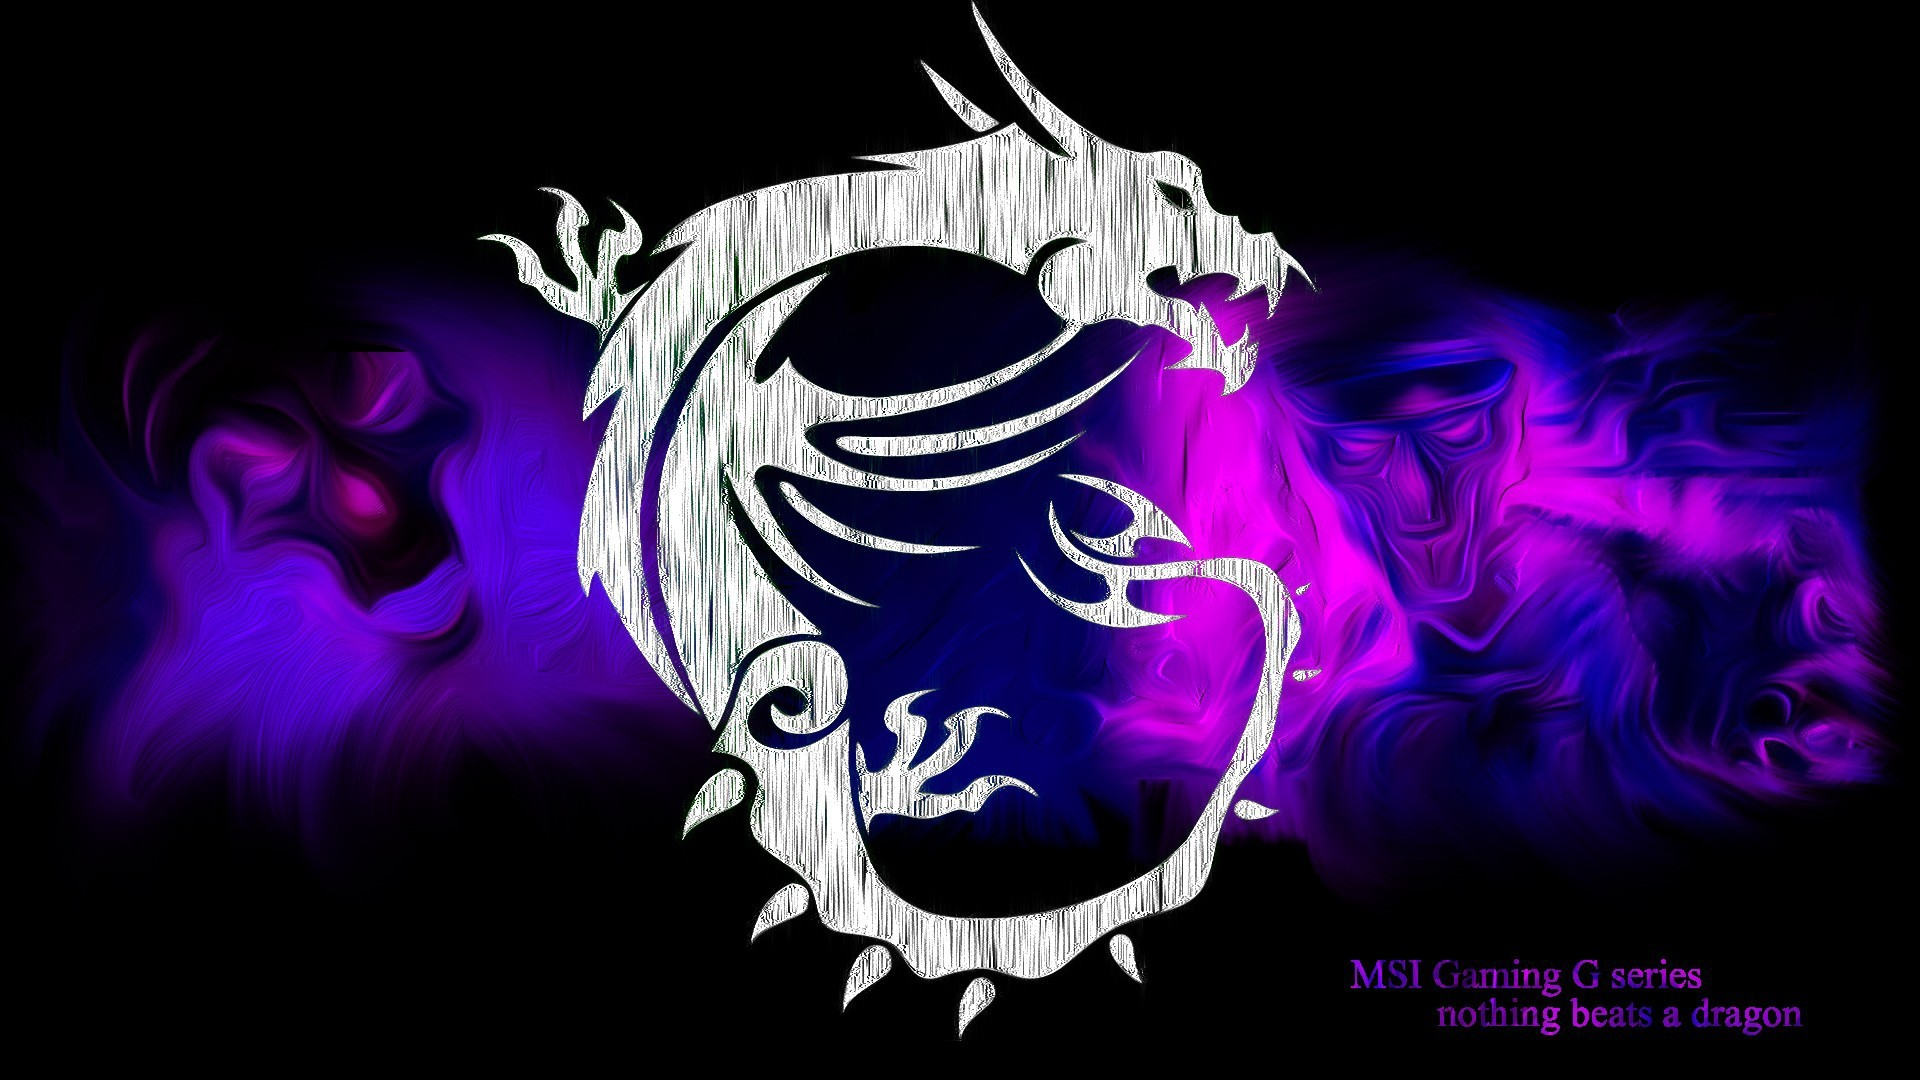 10 New Msi Gaming Series Wallpaper Full Hd 1920 1080 For